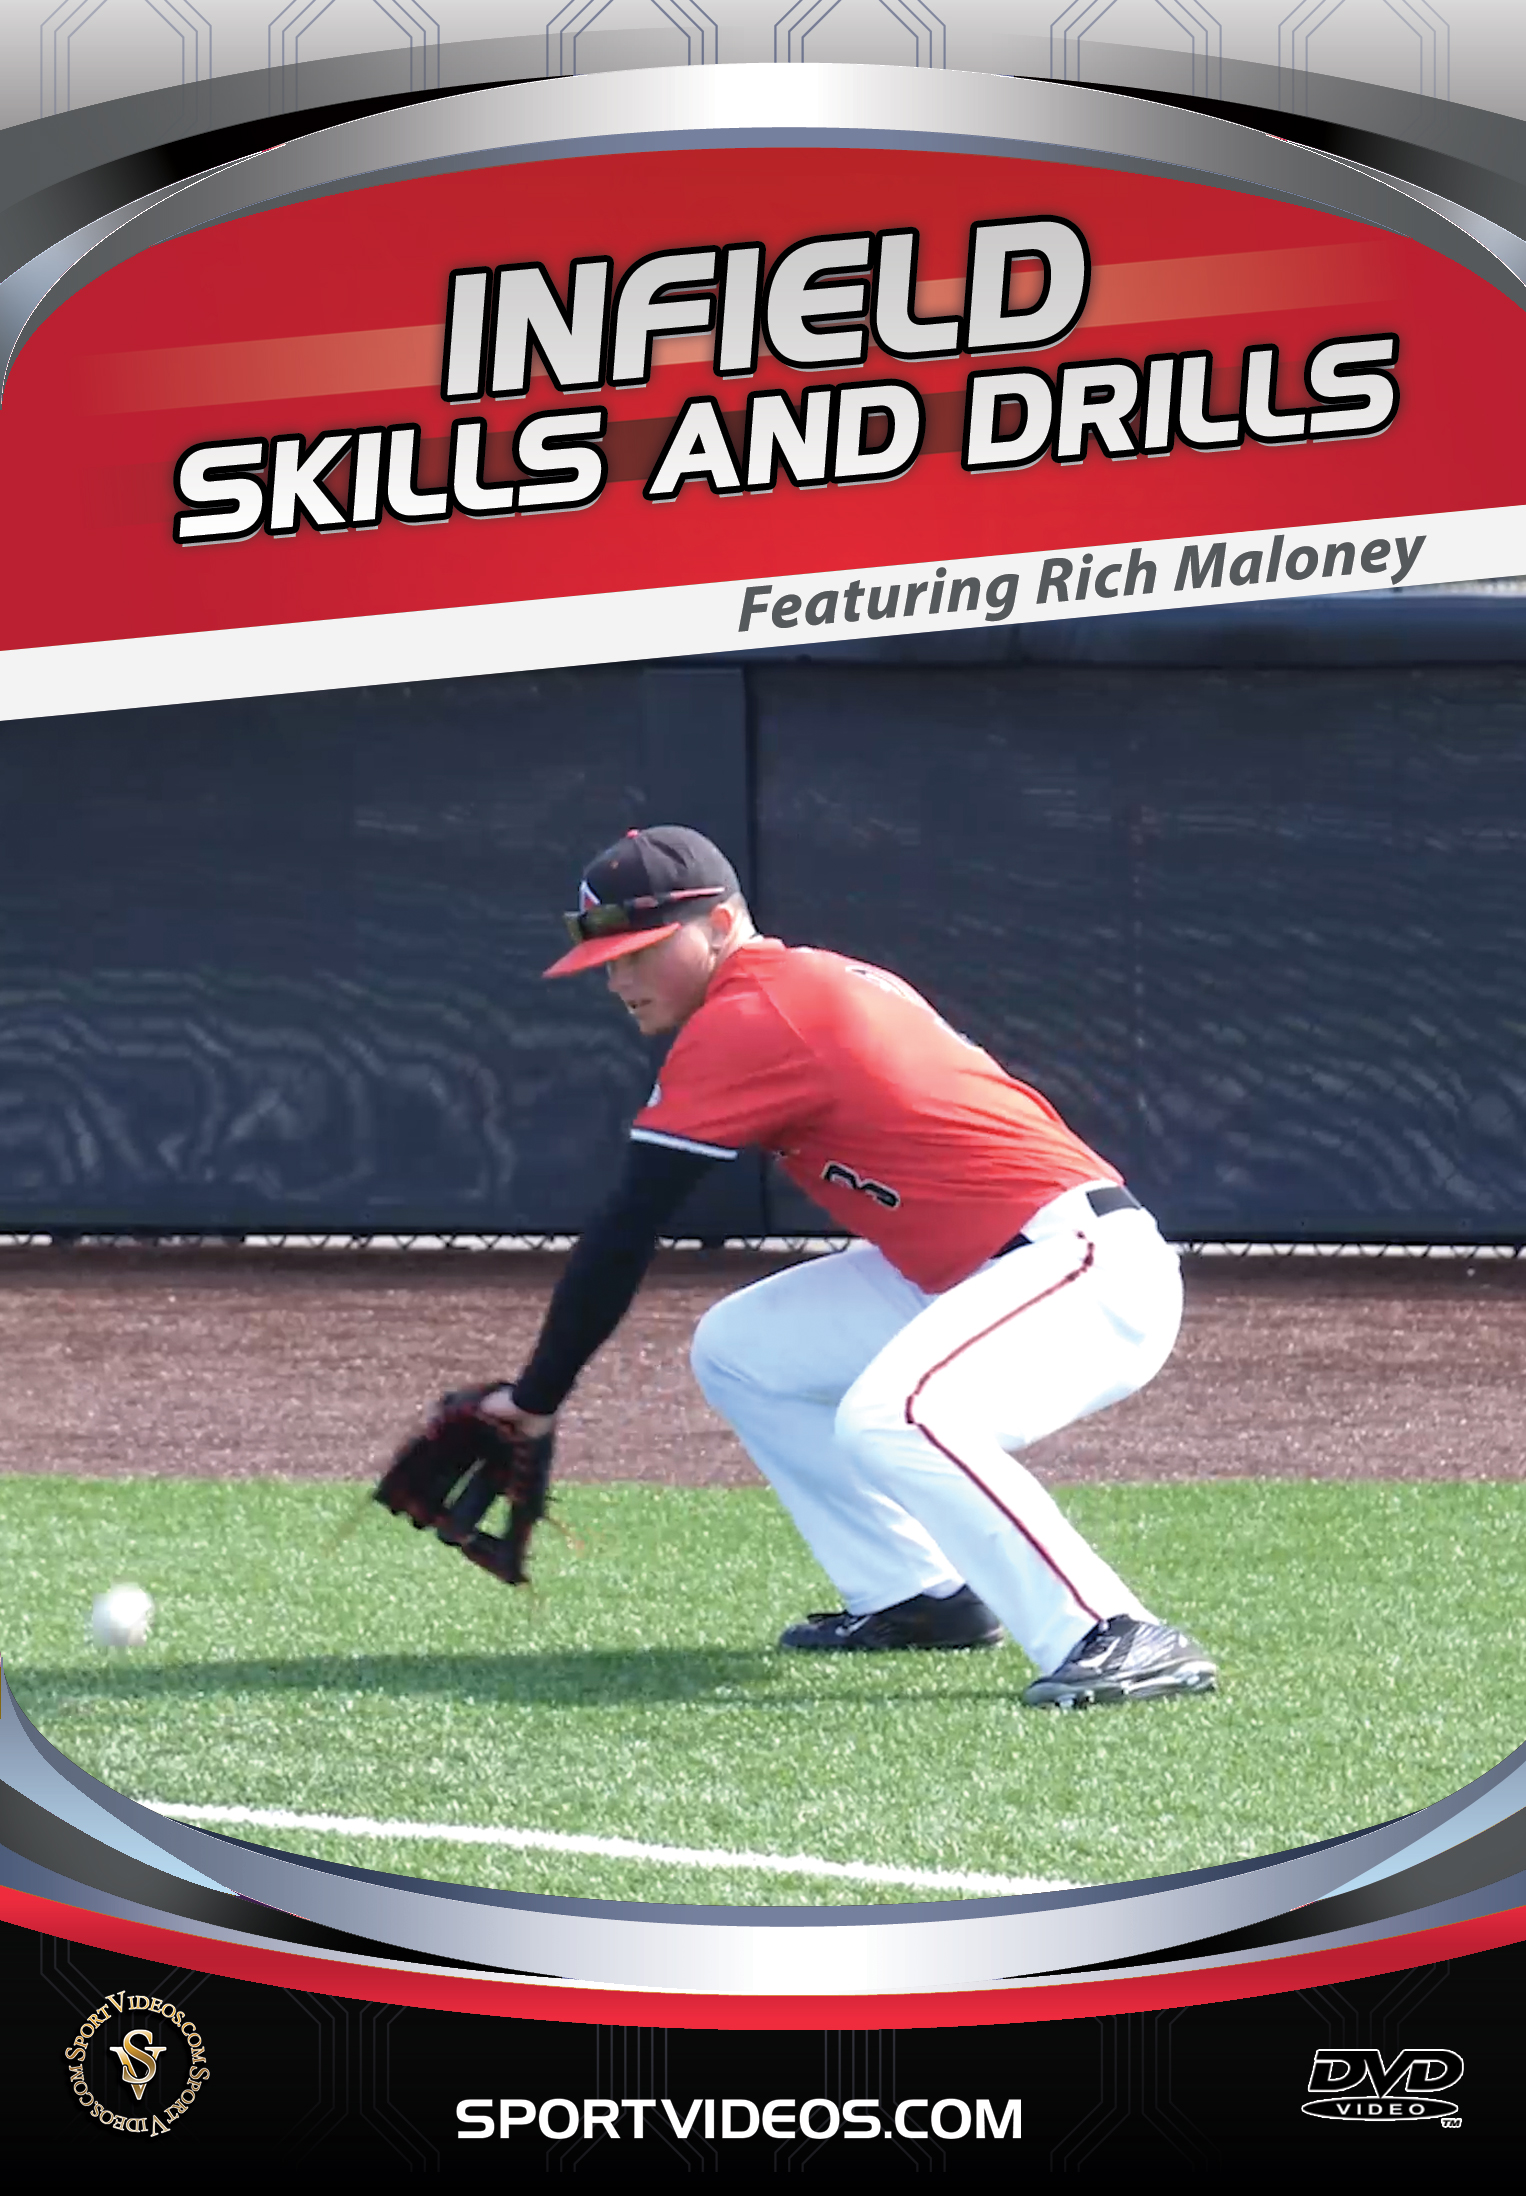 Infield Skills and Drill DVD or Download